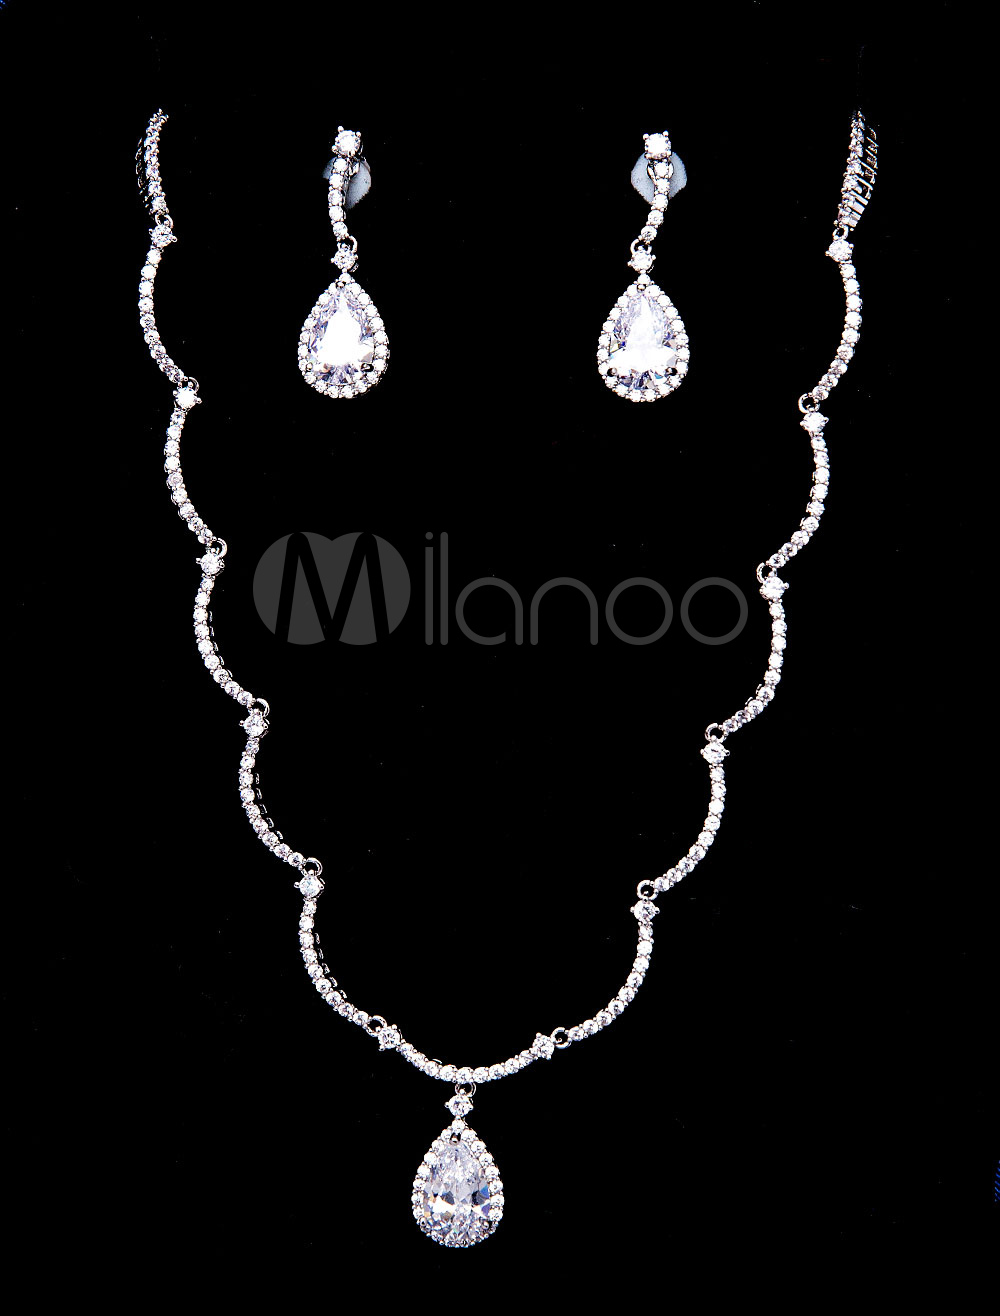 Buy Silver Wedding Jewelry Vintage Beaded Bridal Necklace Set With Drop Earrings for $38.69 in Milanoo store